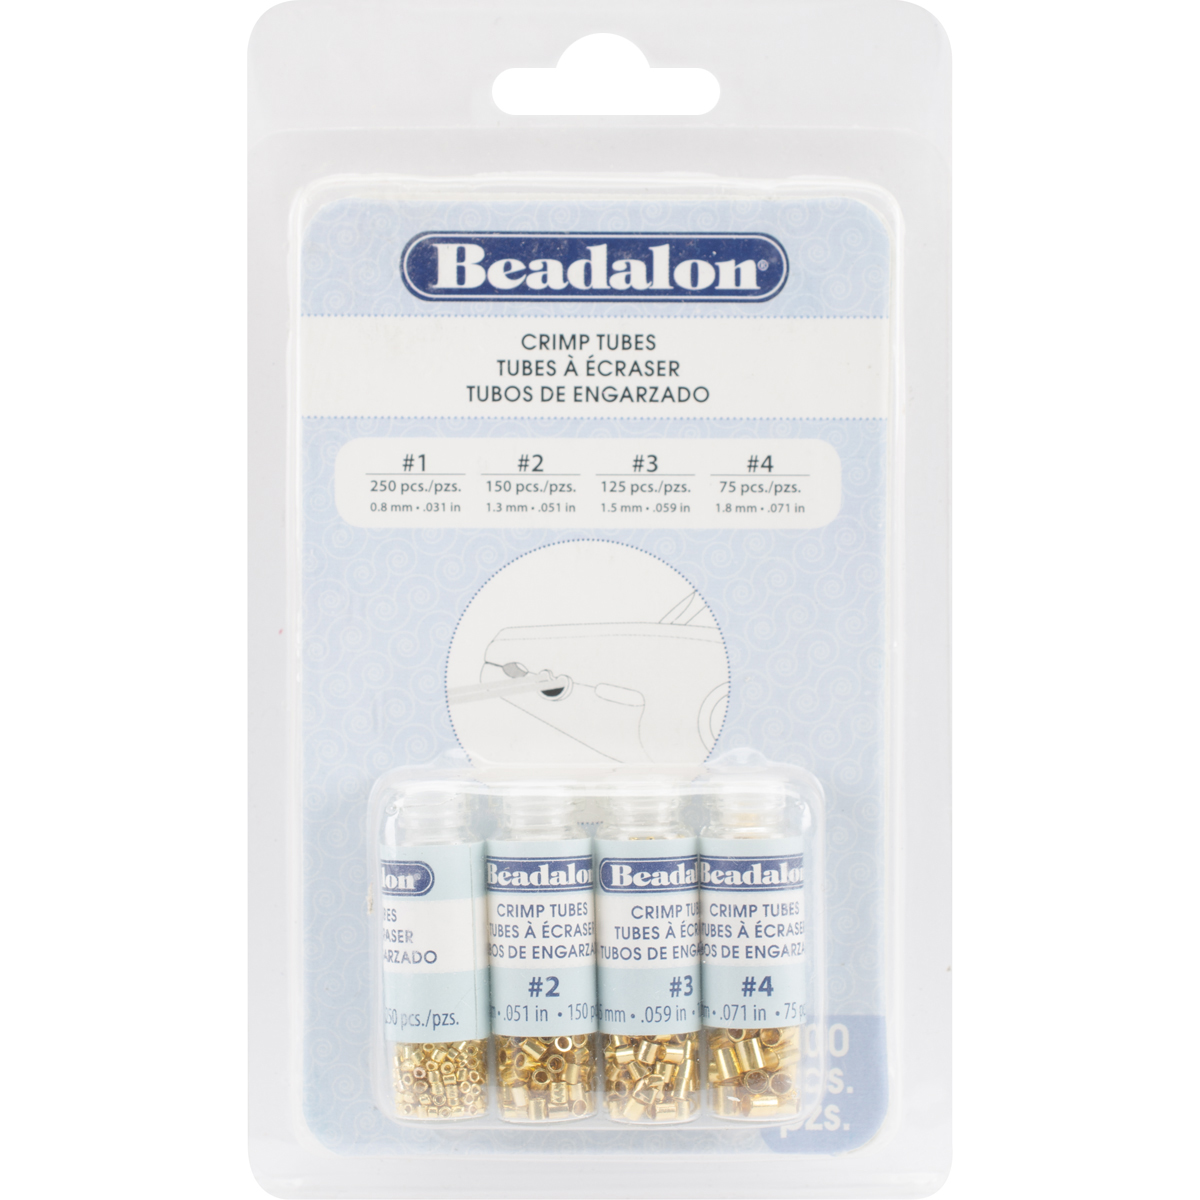 Beadalon Crimp Tubes Gold Assorted #1,#2,#3,#4